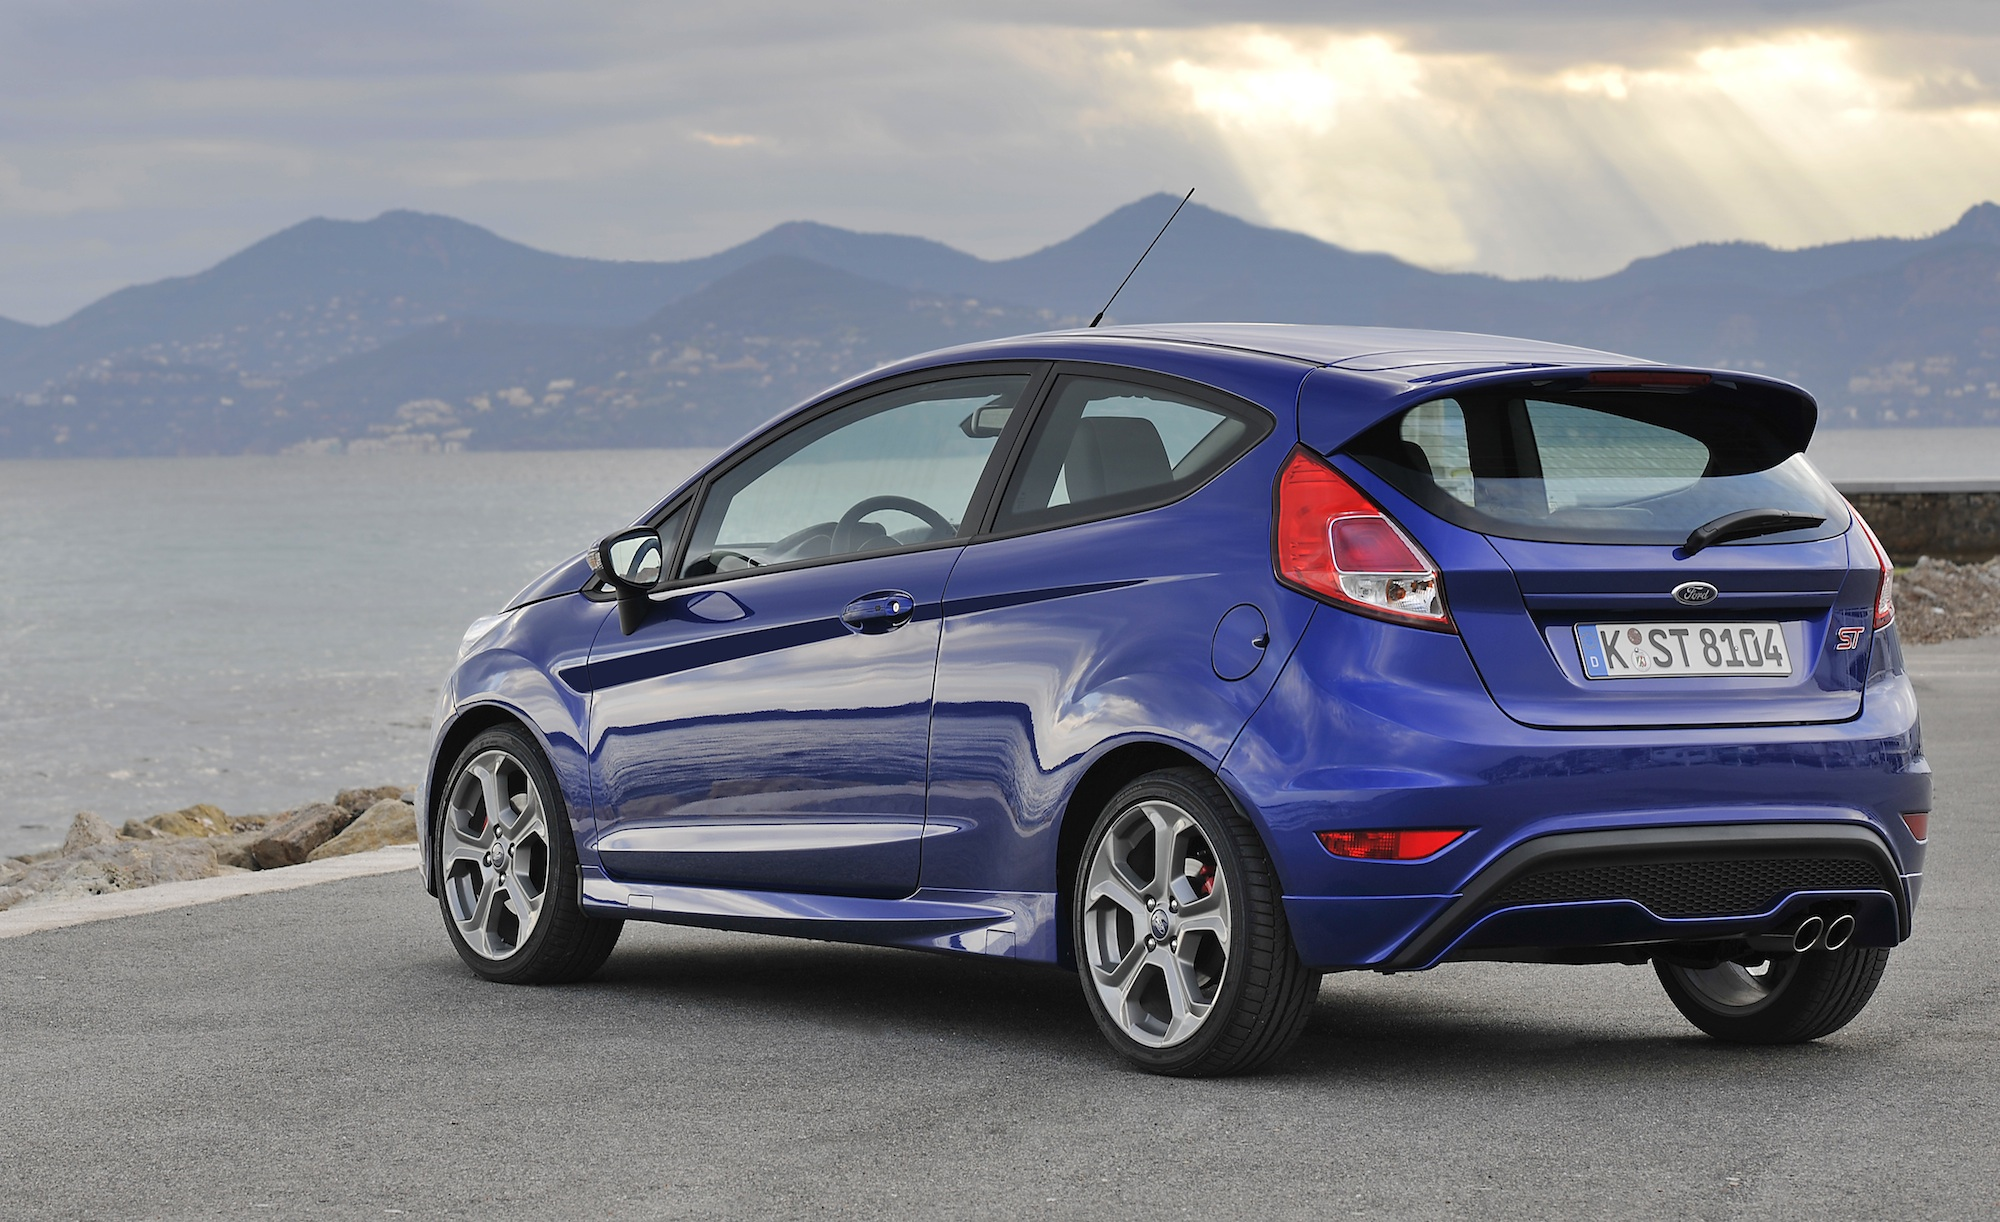 ford fiesta st technical details history photos on better parts ltd. Black Bedroom Furniture Sets. Home Design Ideas